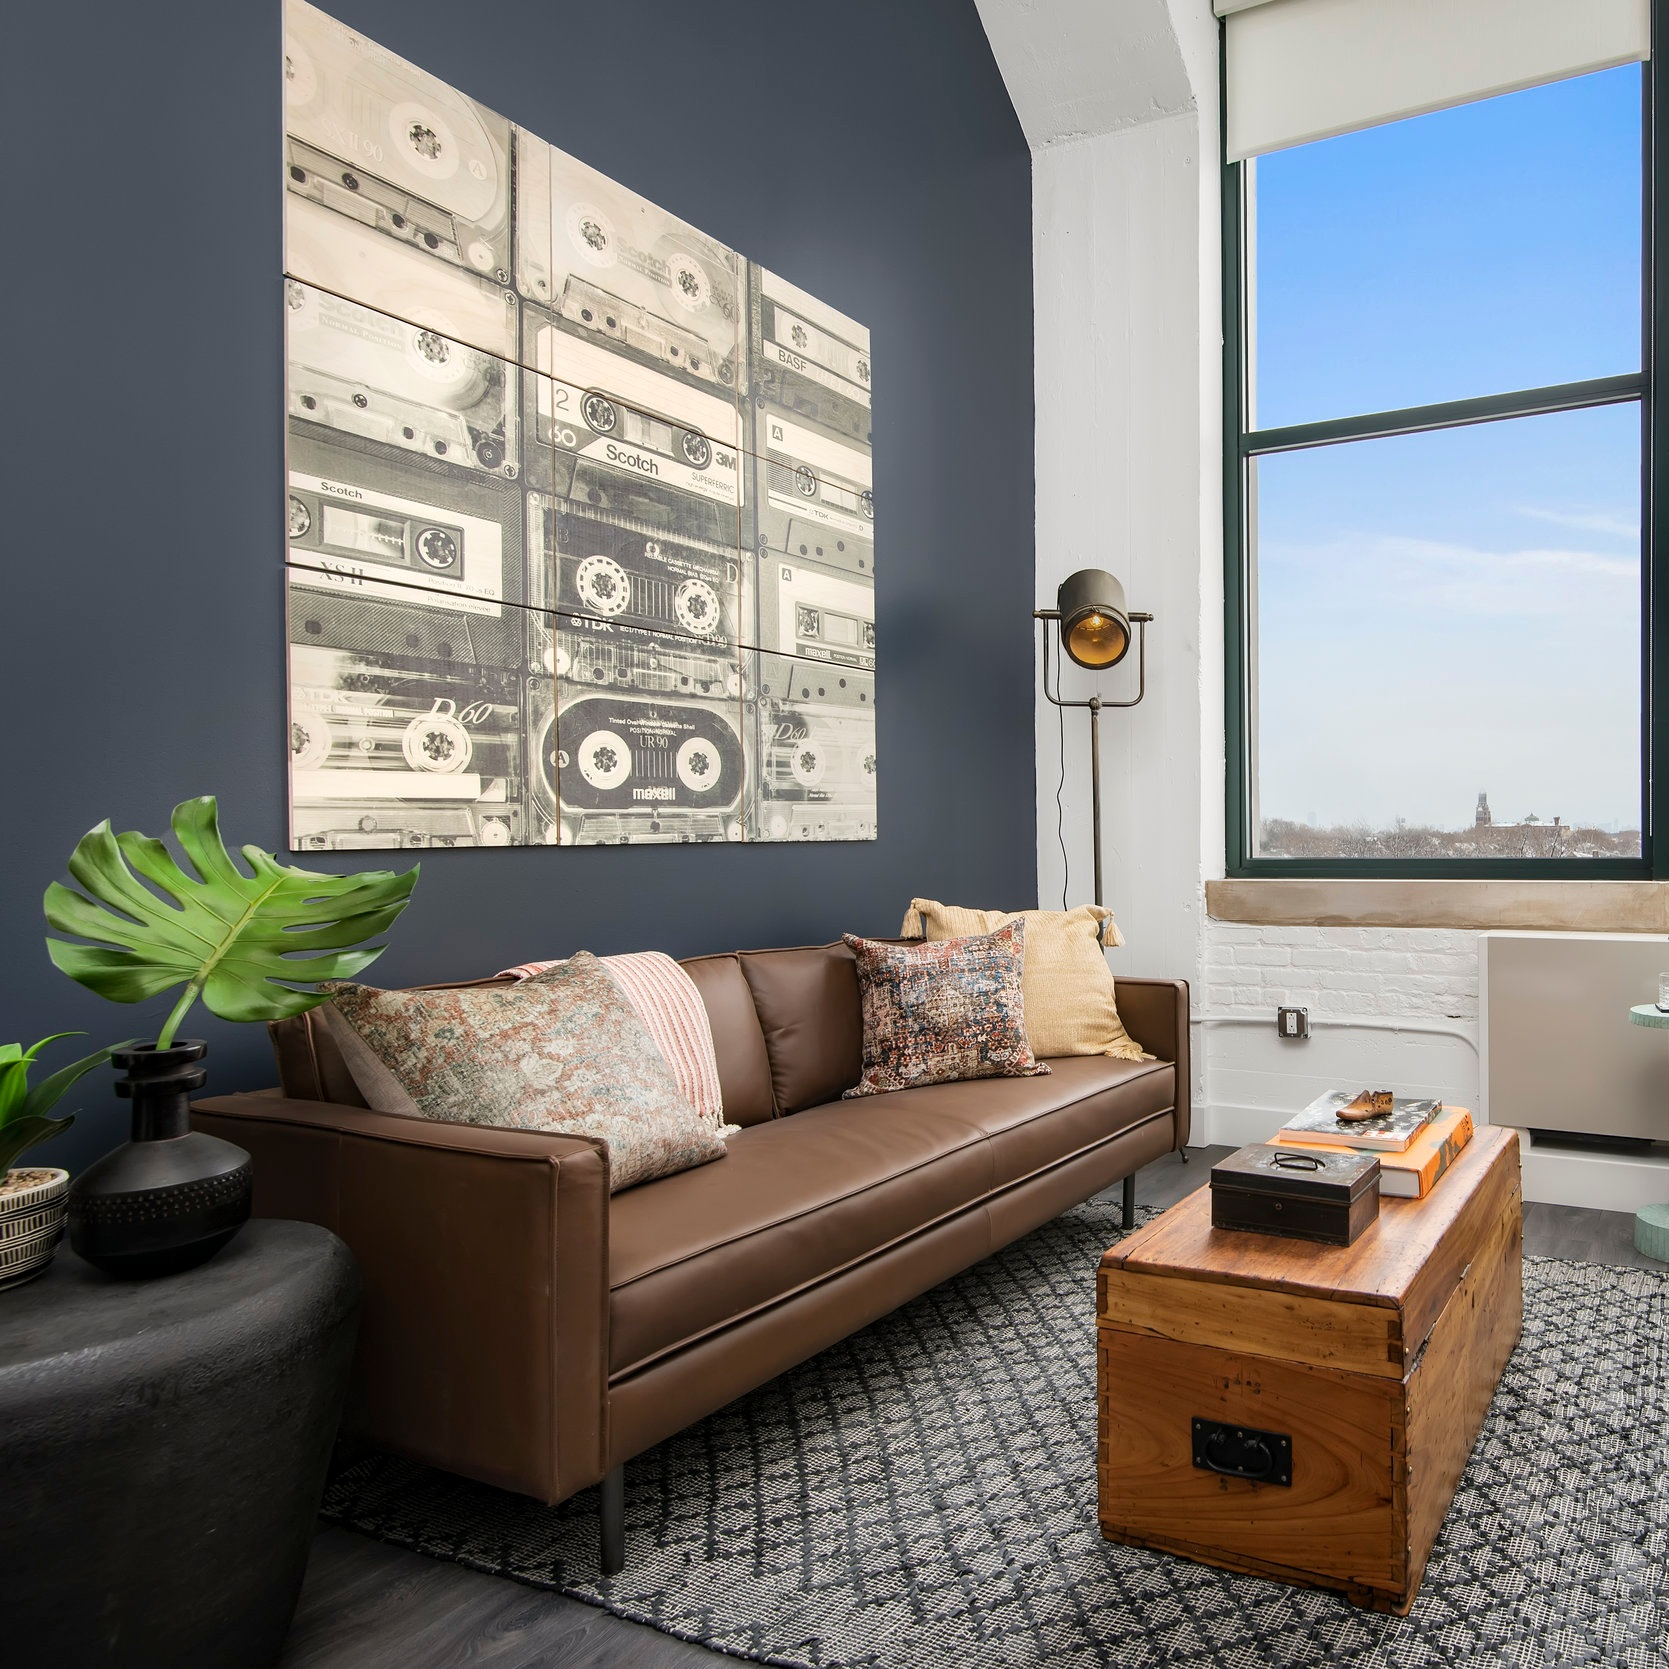 LOFTS IN OLD MARSHALL FIELD'S WAREHOUSE NOW ACCEPTING RENTERS - BLOCK CLUB > 2.22.2O19